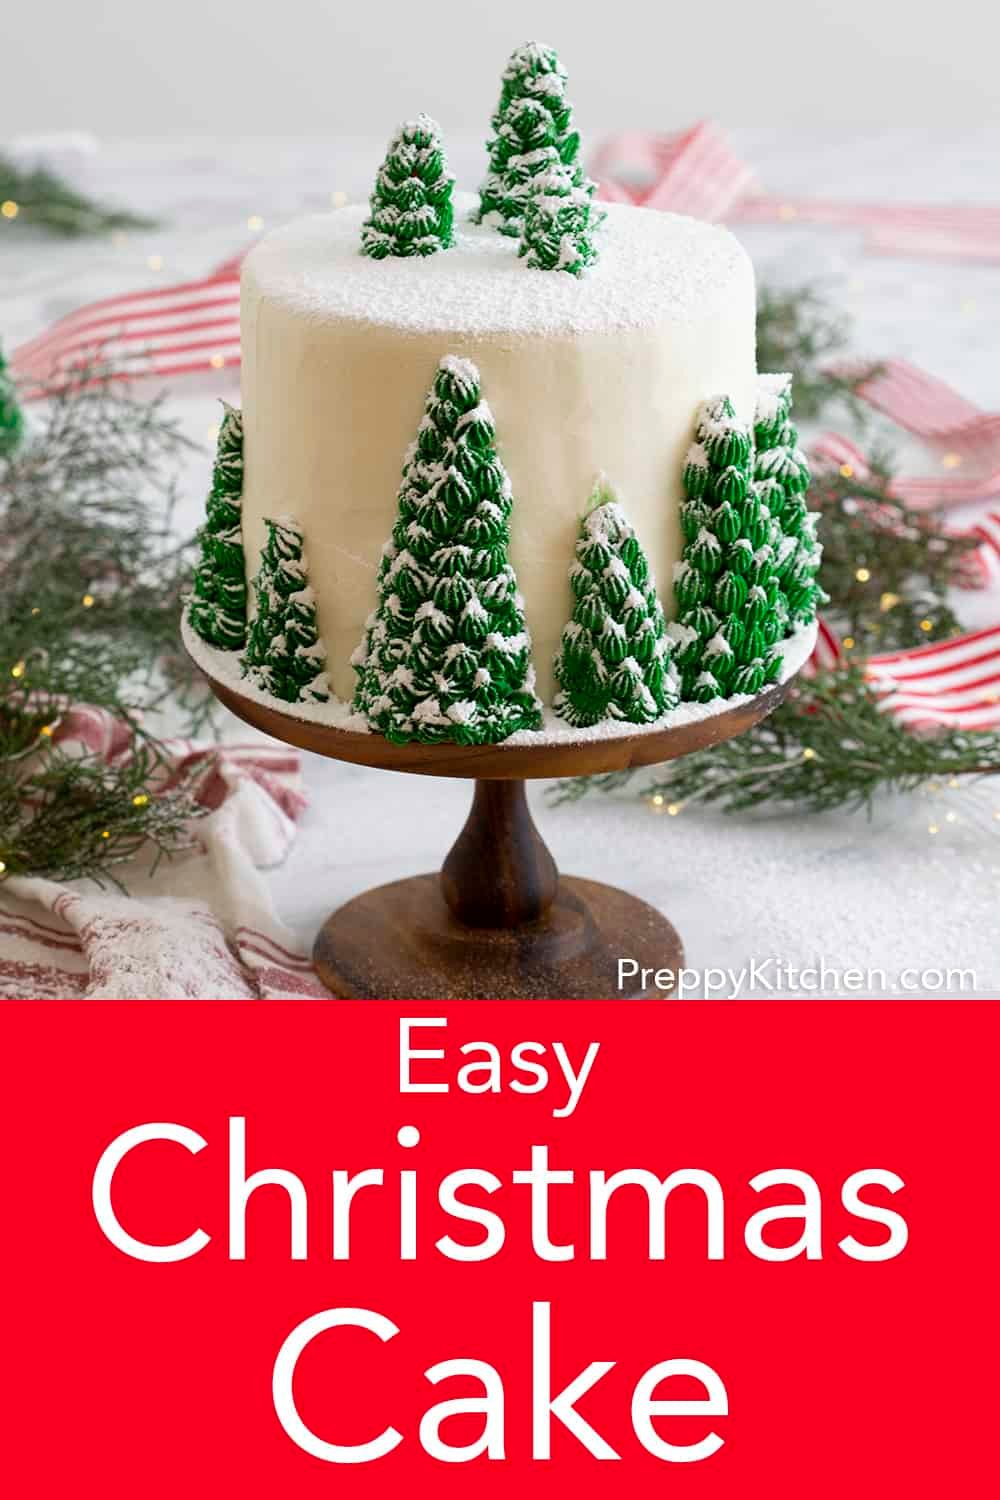 A Delicious Vanilla Cake With Creamy Dreamy Vanilla Buttercream Topped With Beautiful Edible Christm Christmas Cakes Easy Christmas Cake Christmas Tree Cake